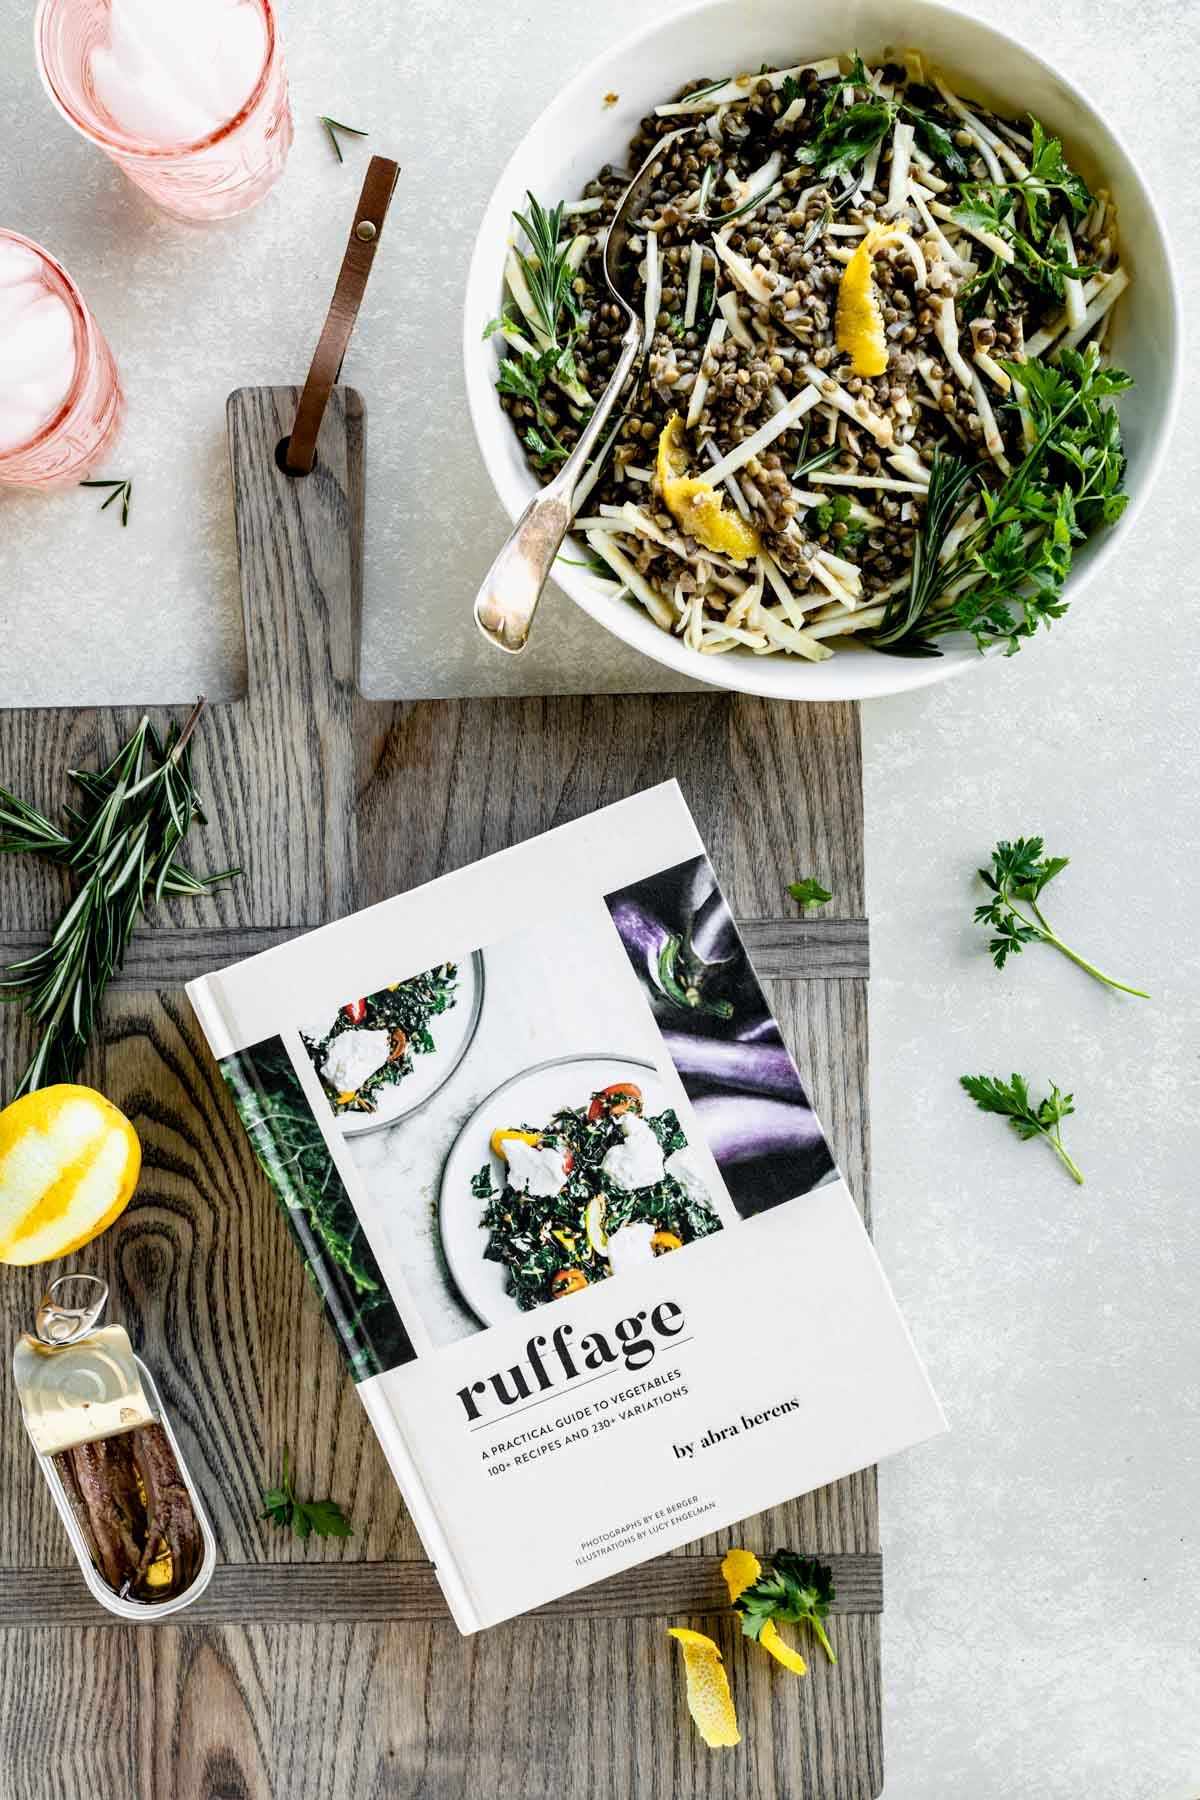 ruffage cookbook in the kitchen with a bowl of salad